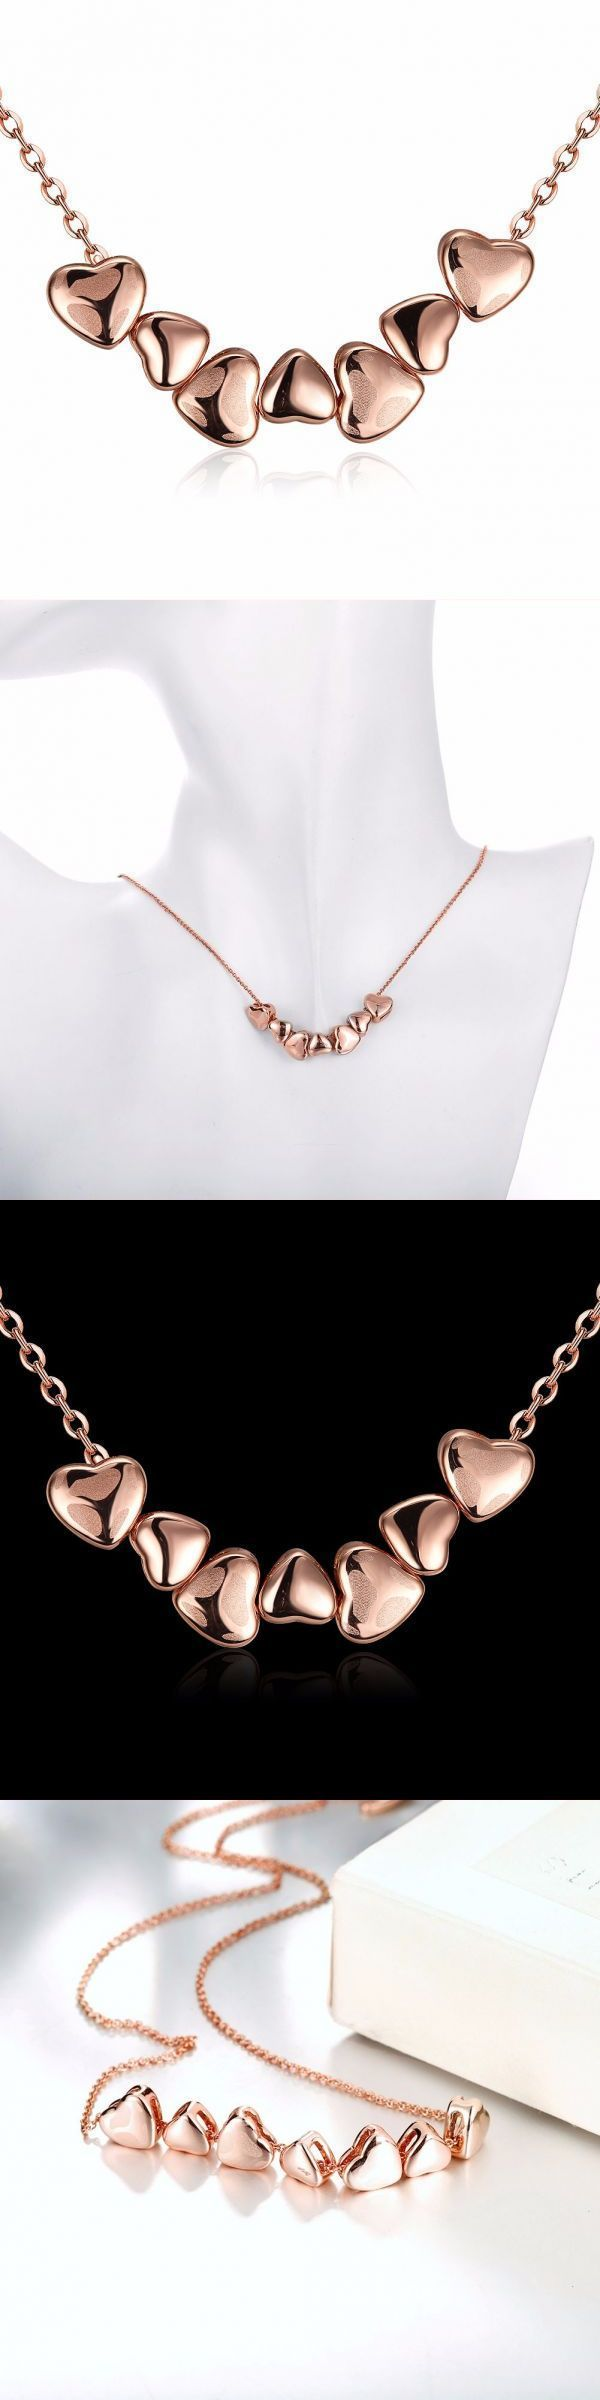 Sweet heart rose gold plated clavicle necklace for women irish necklaces pendants #3 #diamond #pendants #necklaces #cheap #necklace #pendants #in #india #necklace #pendants #diy #necklace #pendants #malaysia